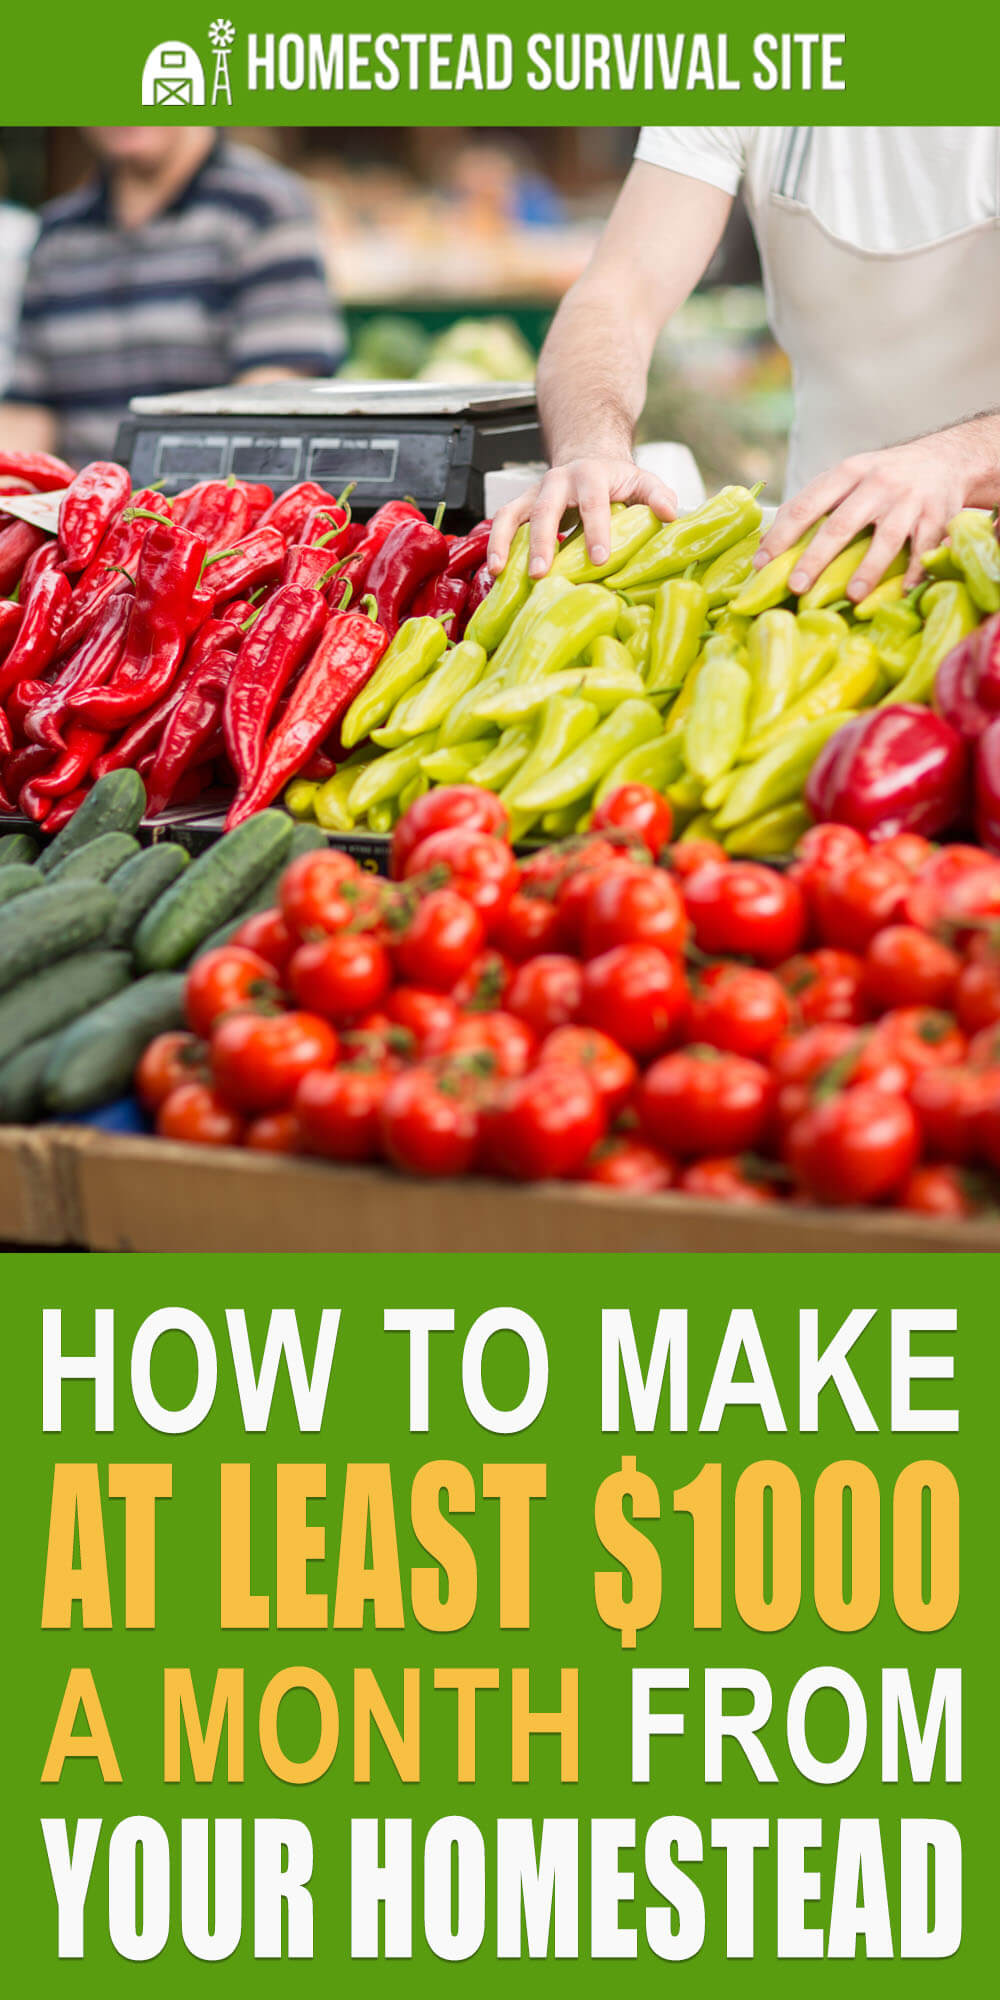 How To Make At Least $1000 a Month From Your Homestead